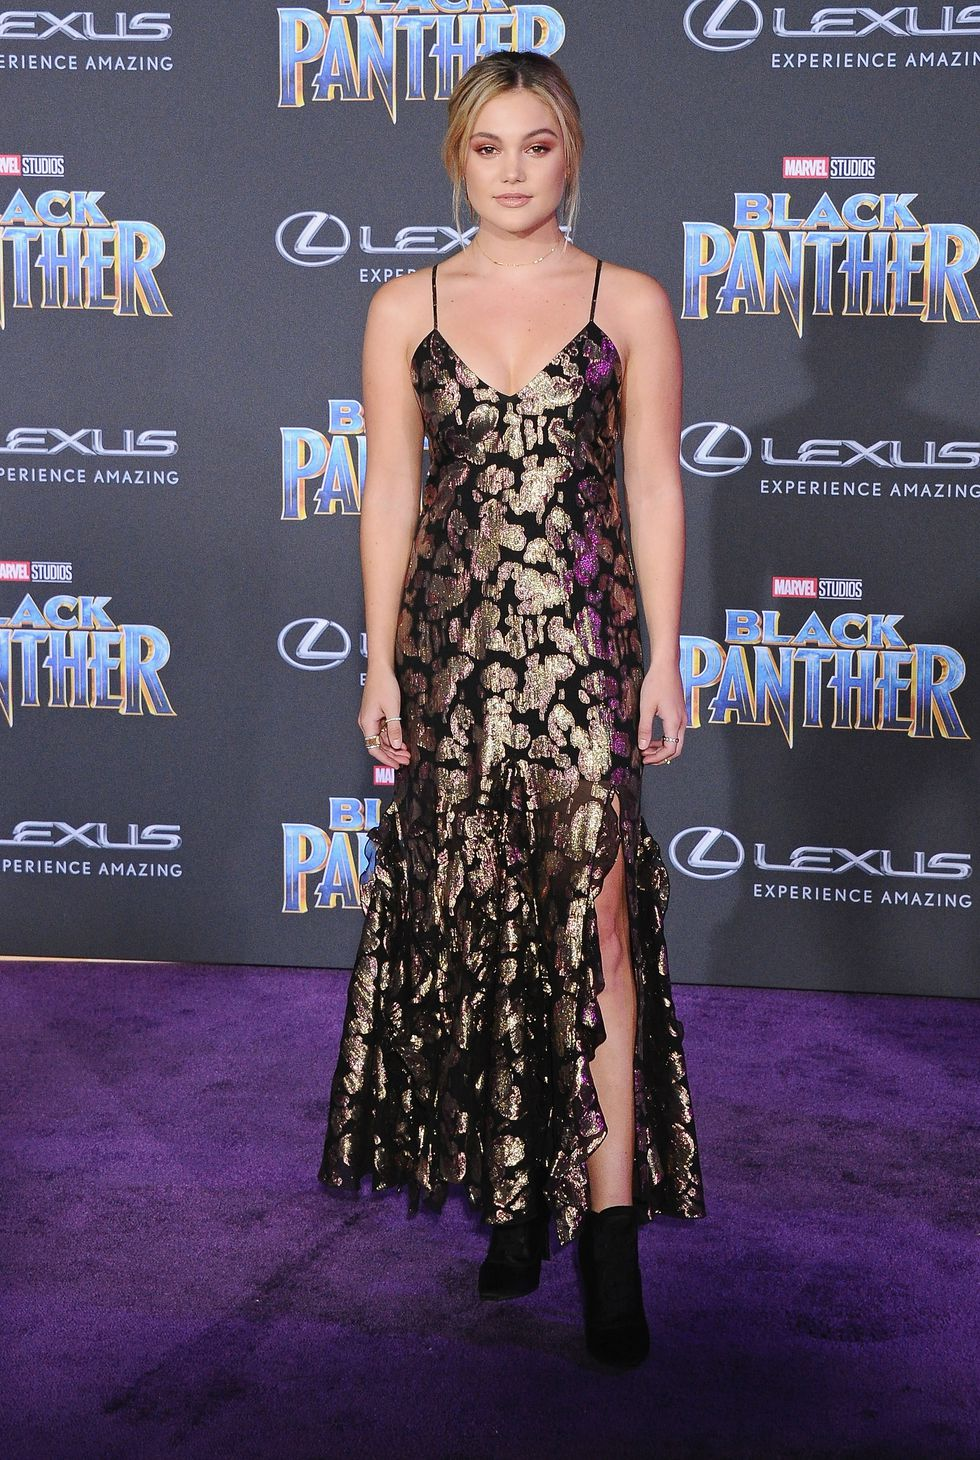 vibrant-hues-bold-patterns-african-themed-outfits-take-purple-carpet-hollywood-premiere-black-panther